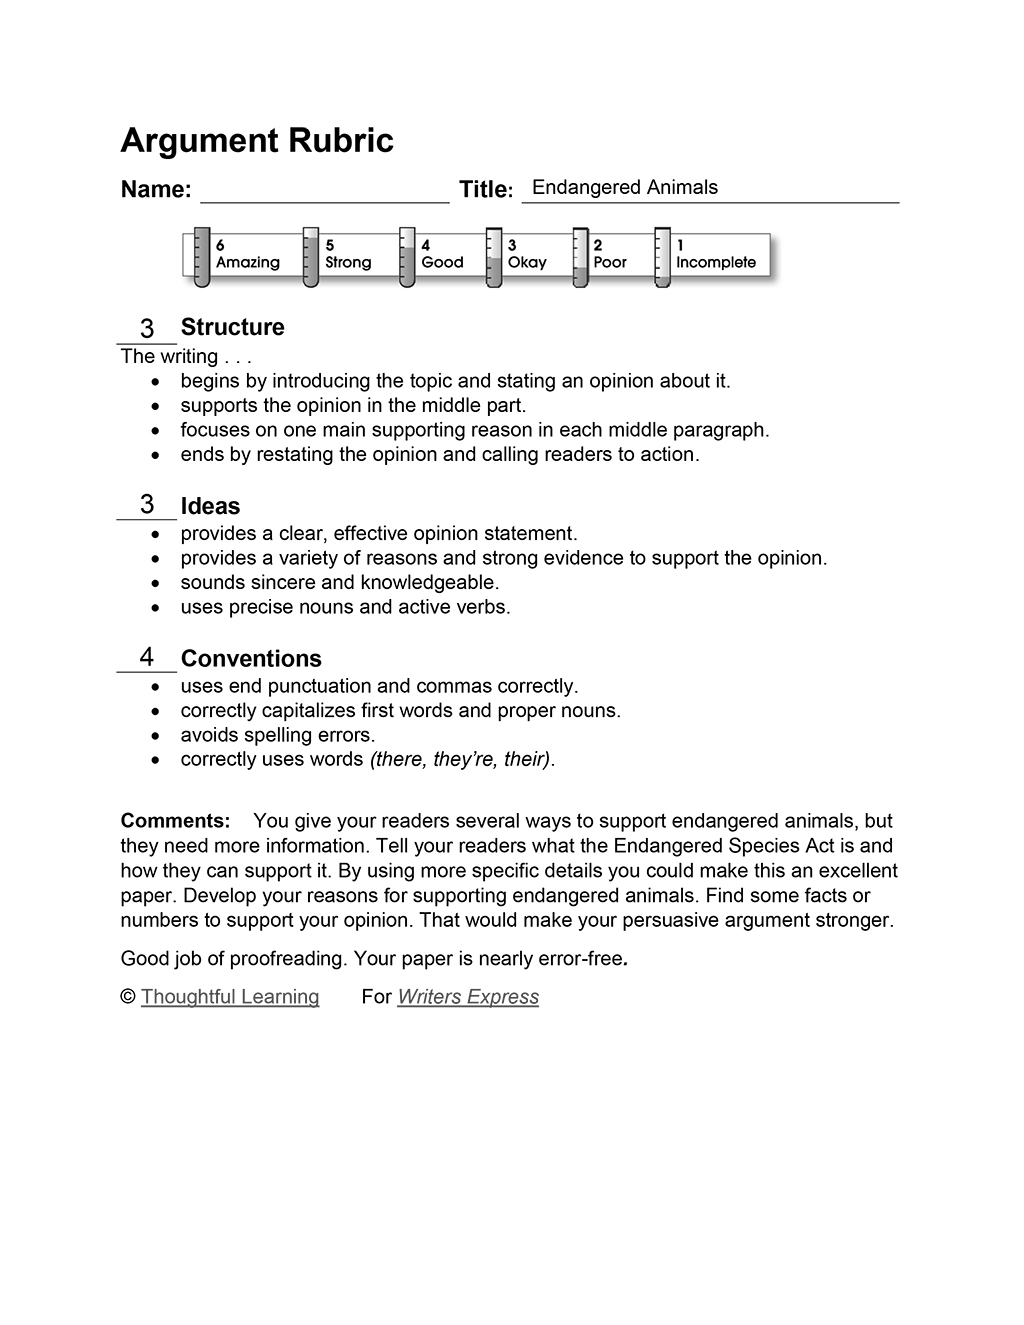 019 Endangered Rubric20copy Research Paper Persuasive Topics About Beautiful Animals Full